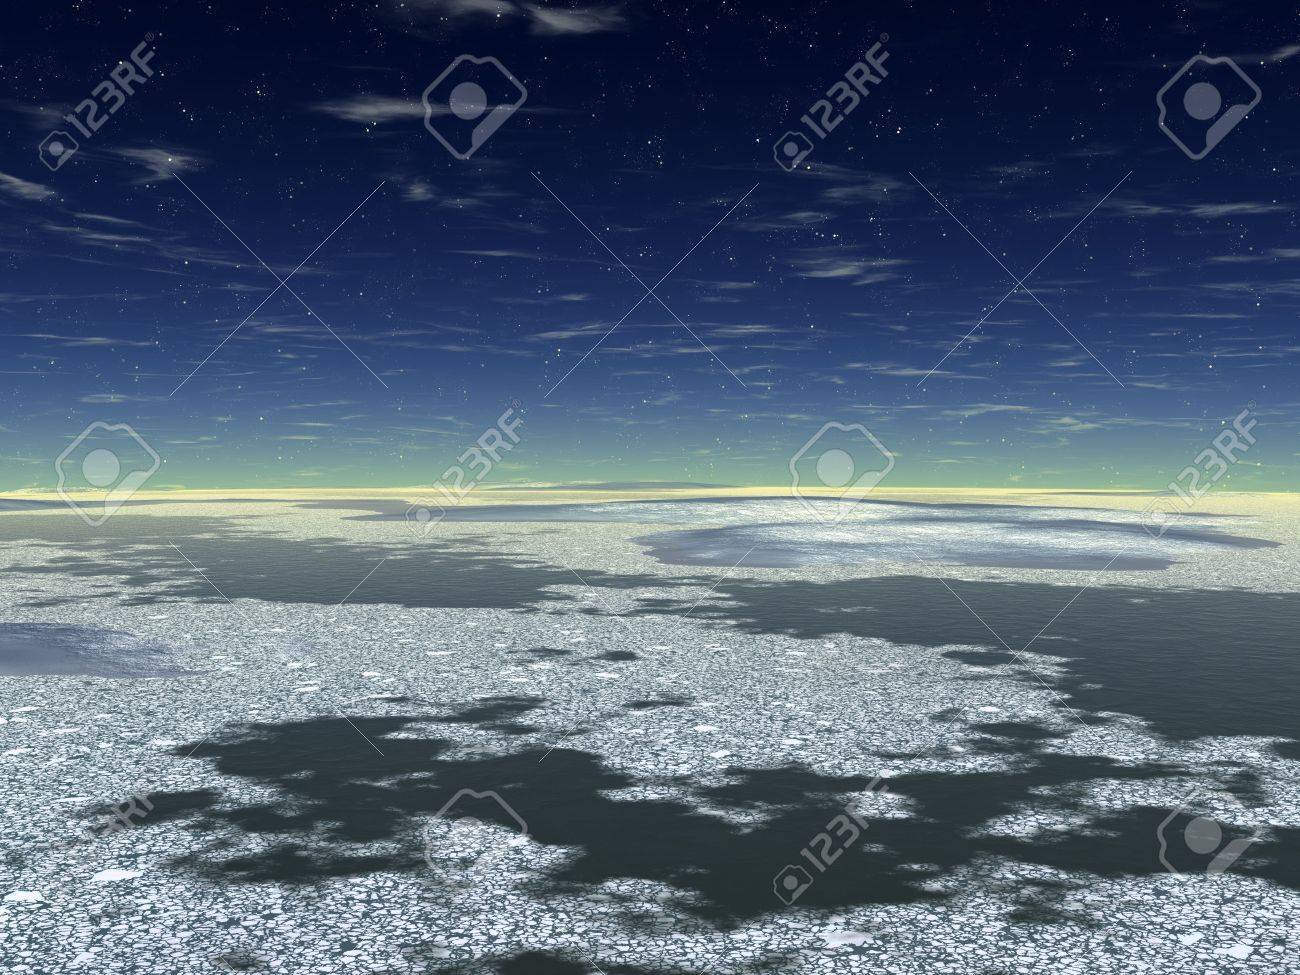 The dark sky. Ocean. Dark water and white ice floes on a surface. Stock Photo - 3857992